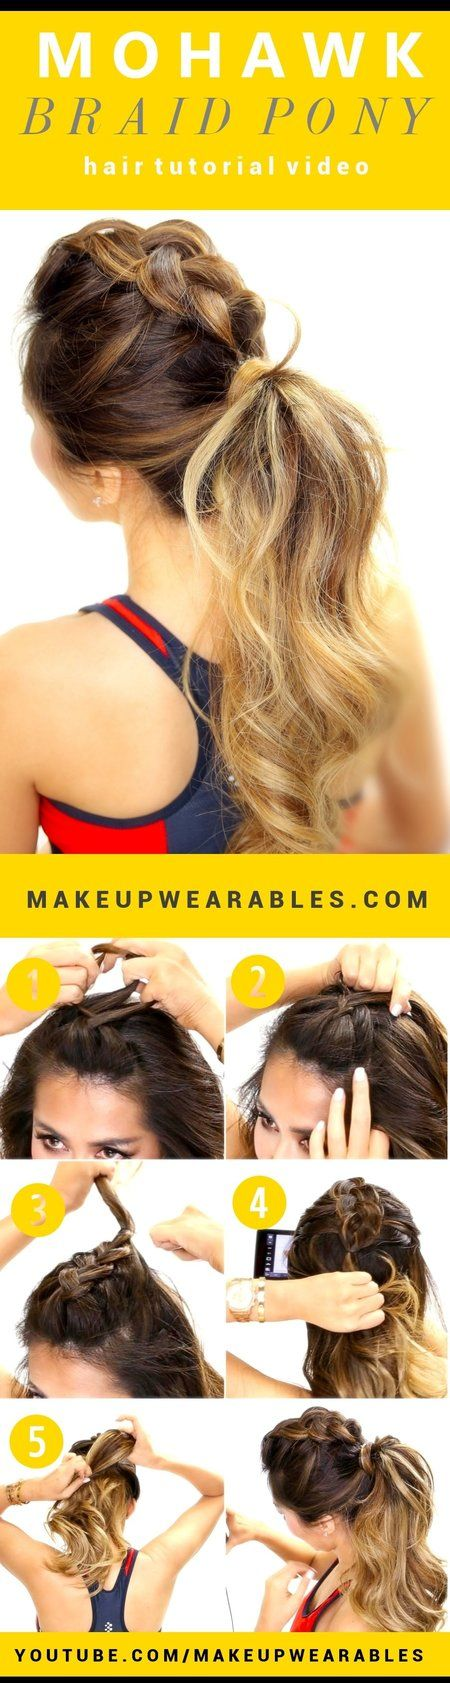 Mohawk braid pony TUTORIAL #howto #easyhair